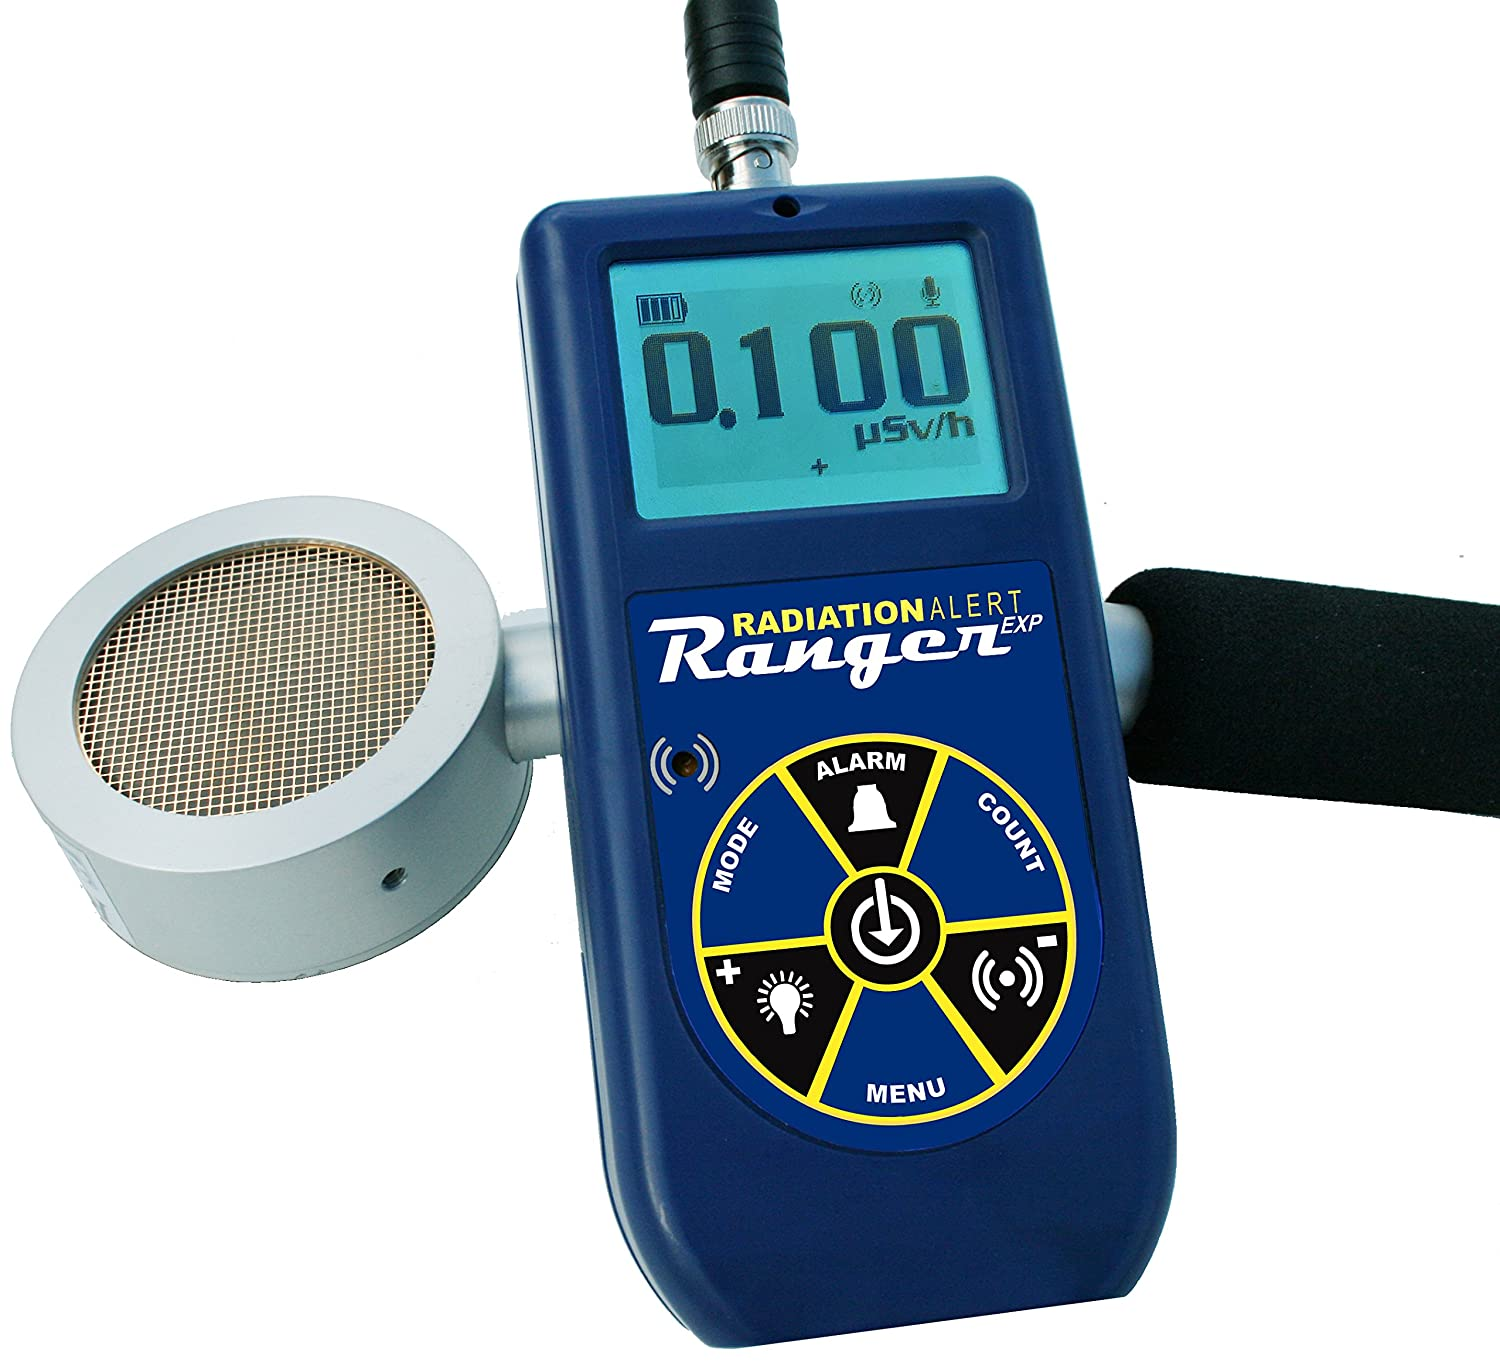 Radiation Alert RangerEXP External 2